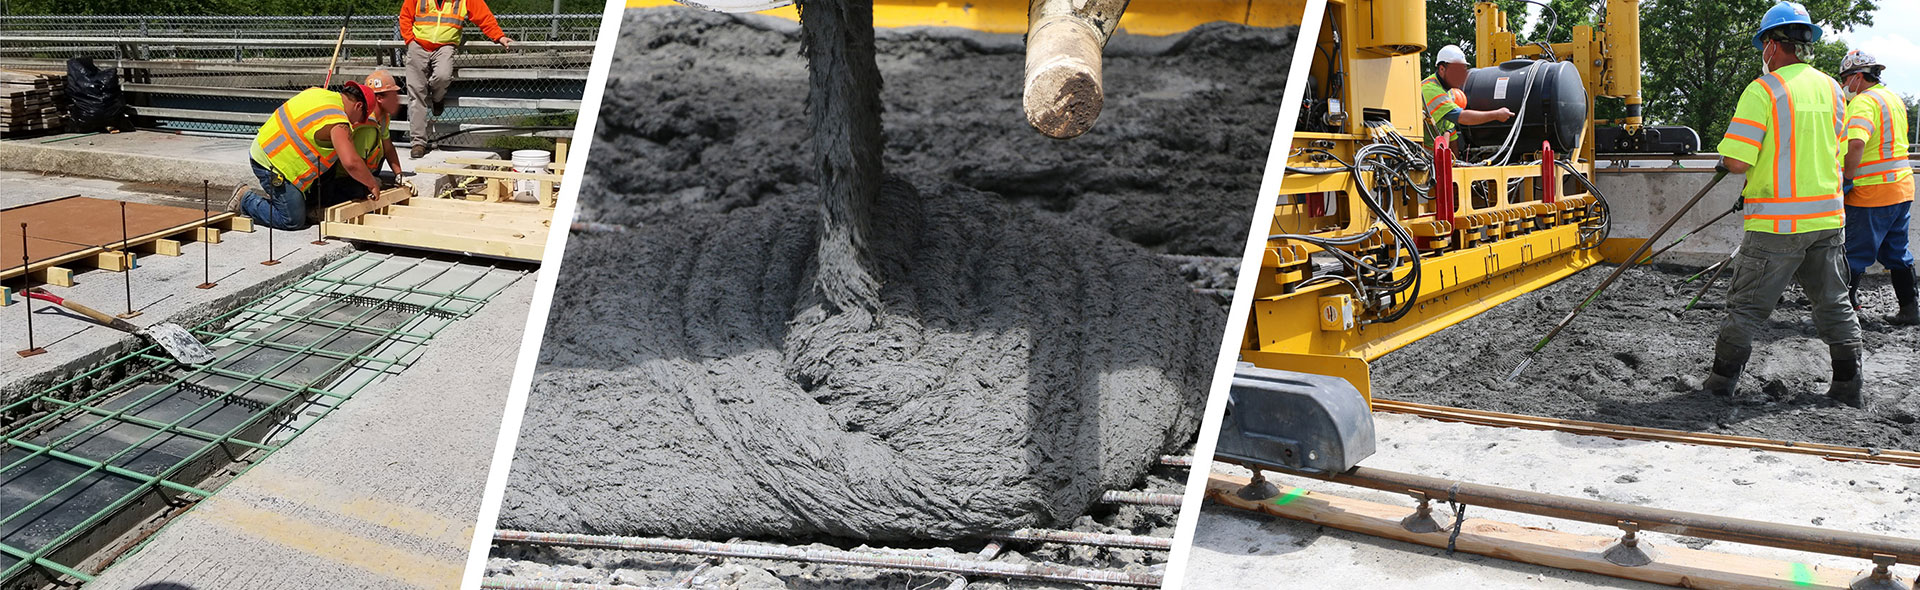 Three photos of workers pouring ultra-high performance concrete.